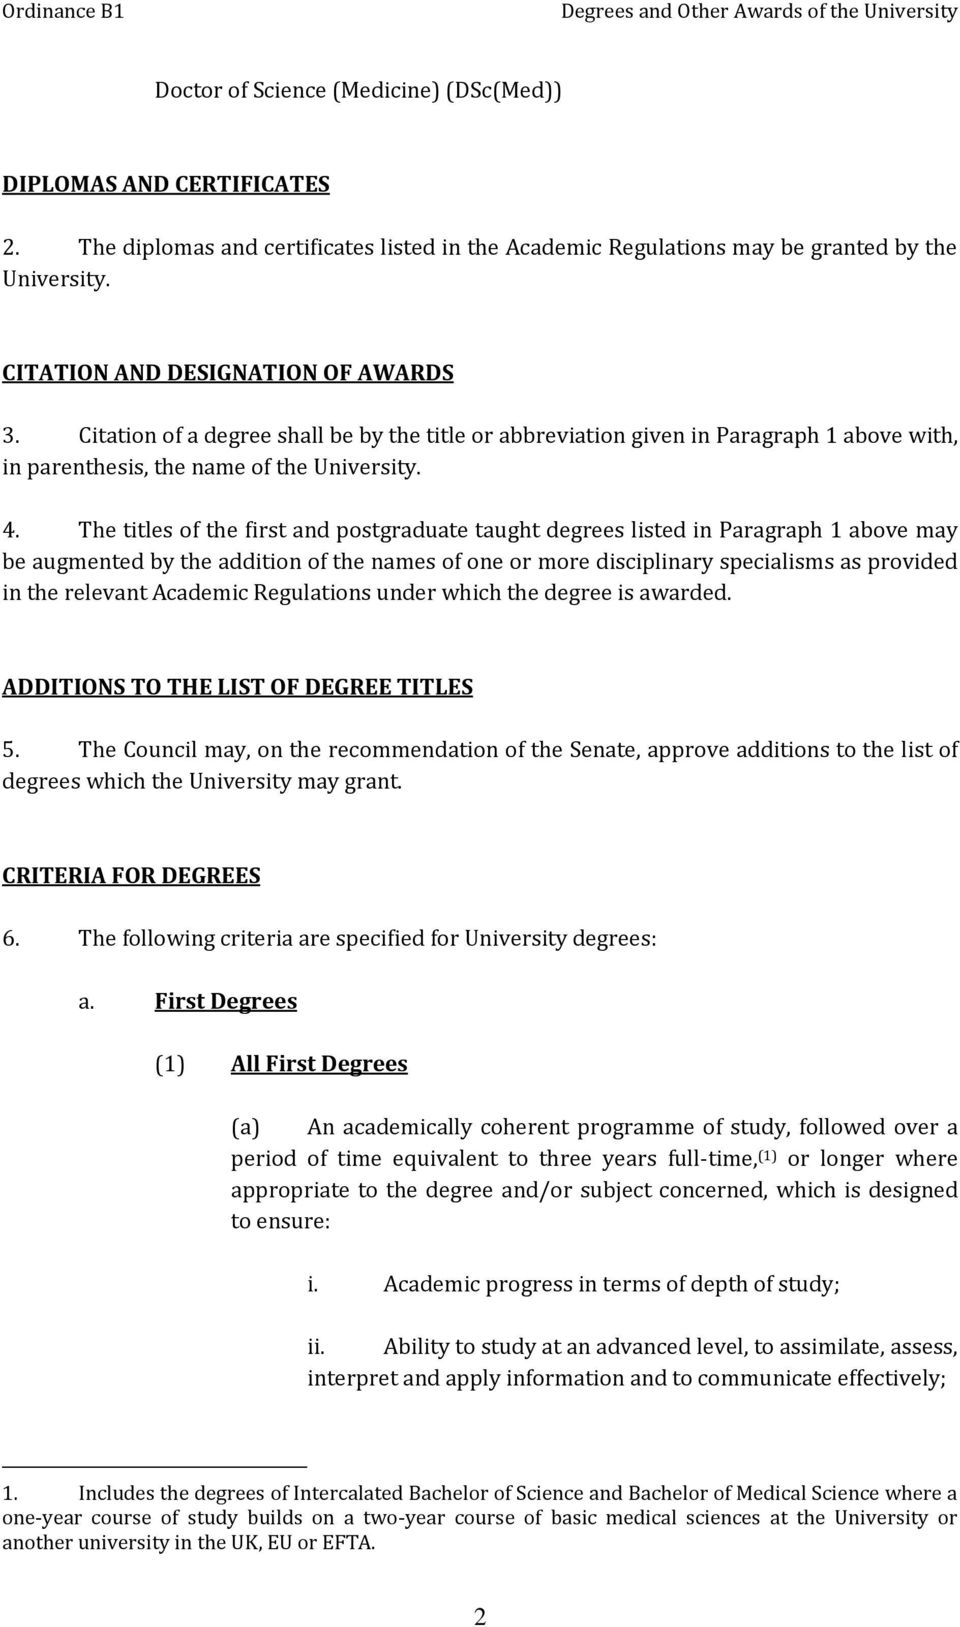 The titles of the first and postgraduate taught degrees listed in Paragraph 1 above may be augmented by the addition of the names of one or more disciplinary specialisms as provided in the relevant